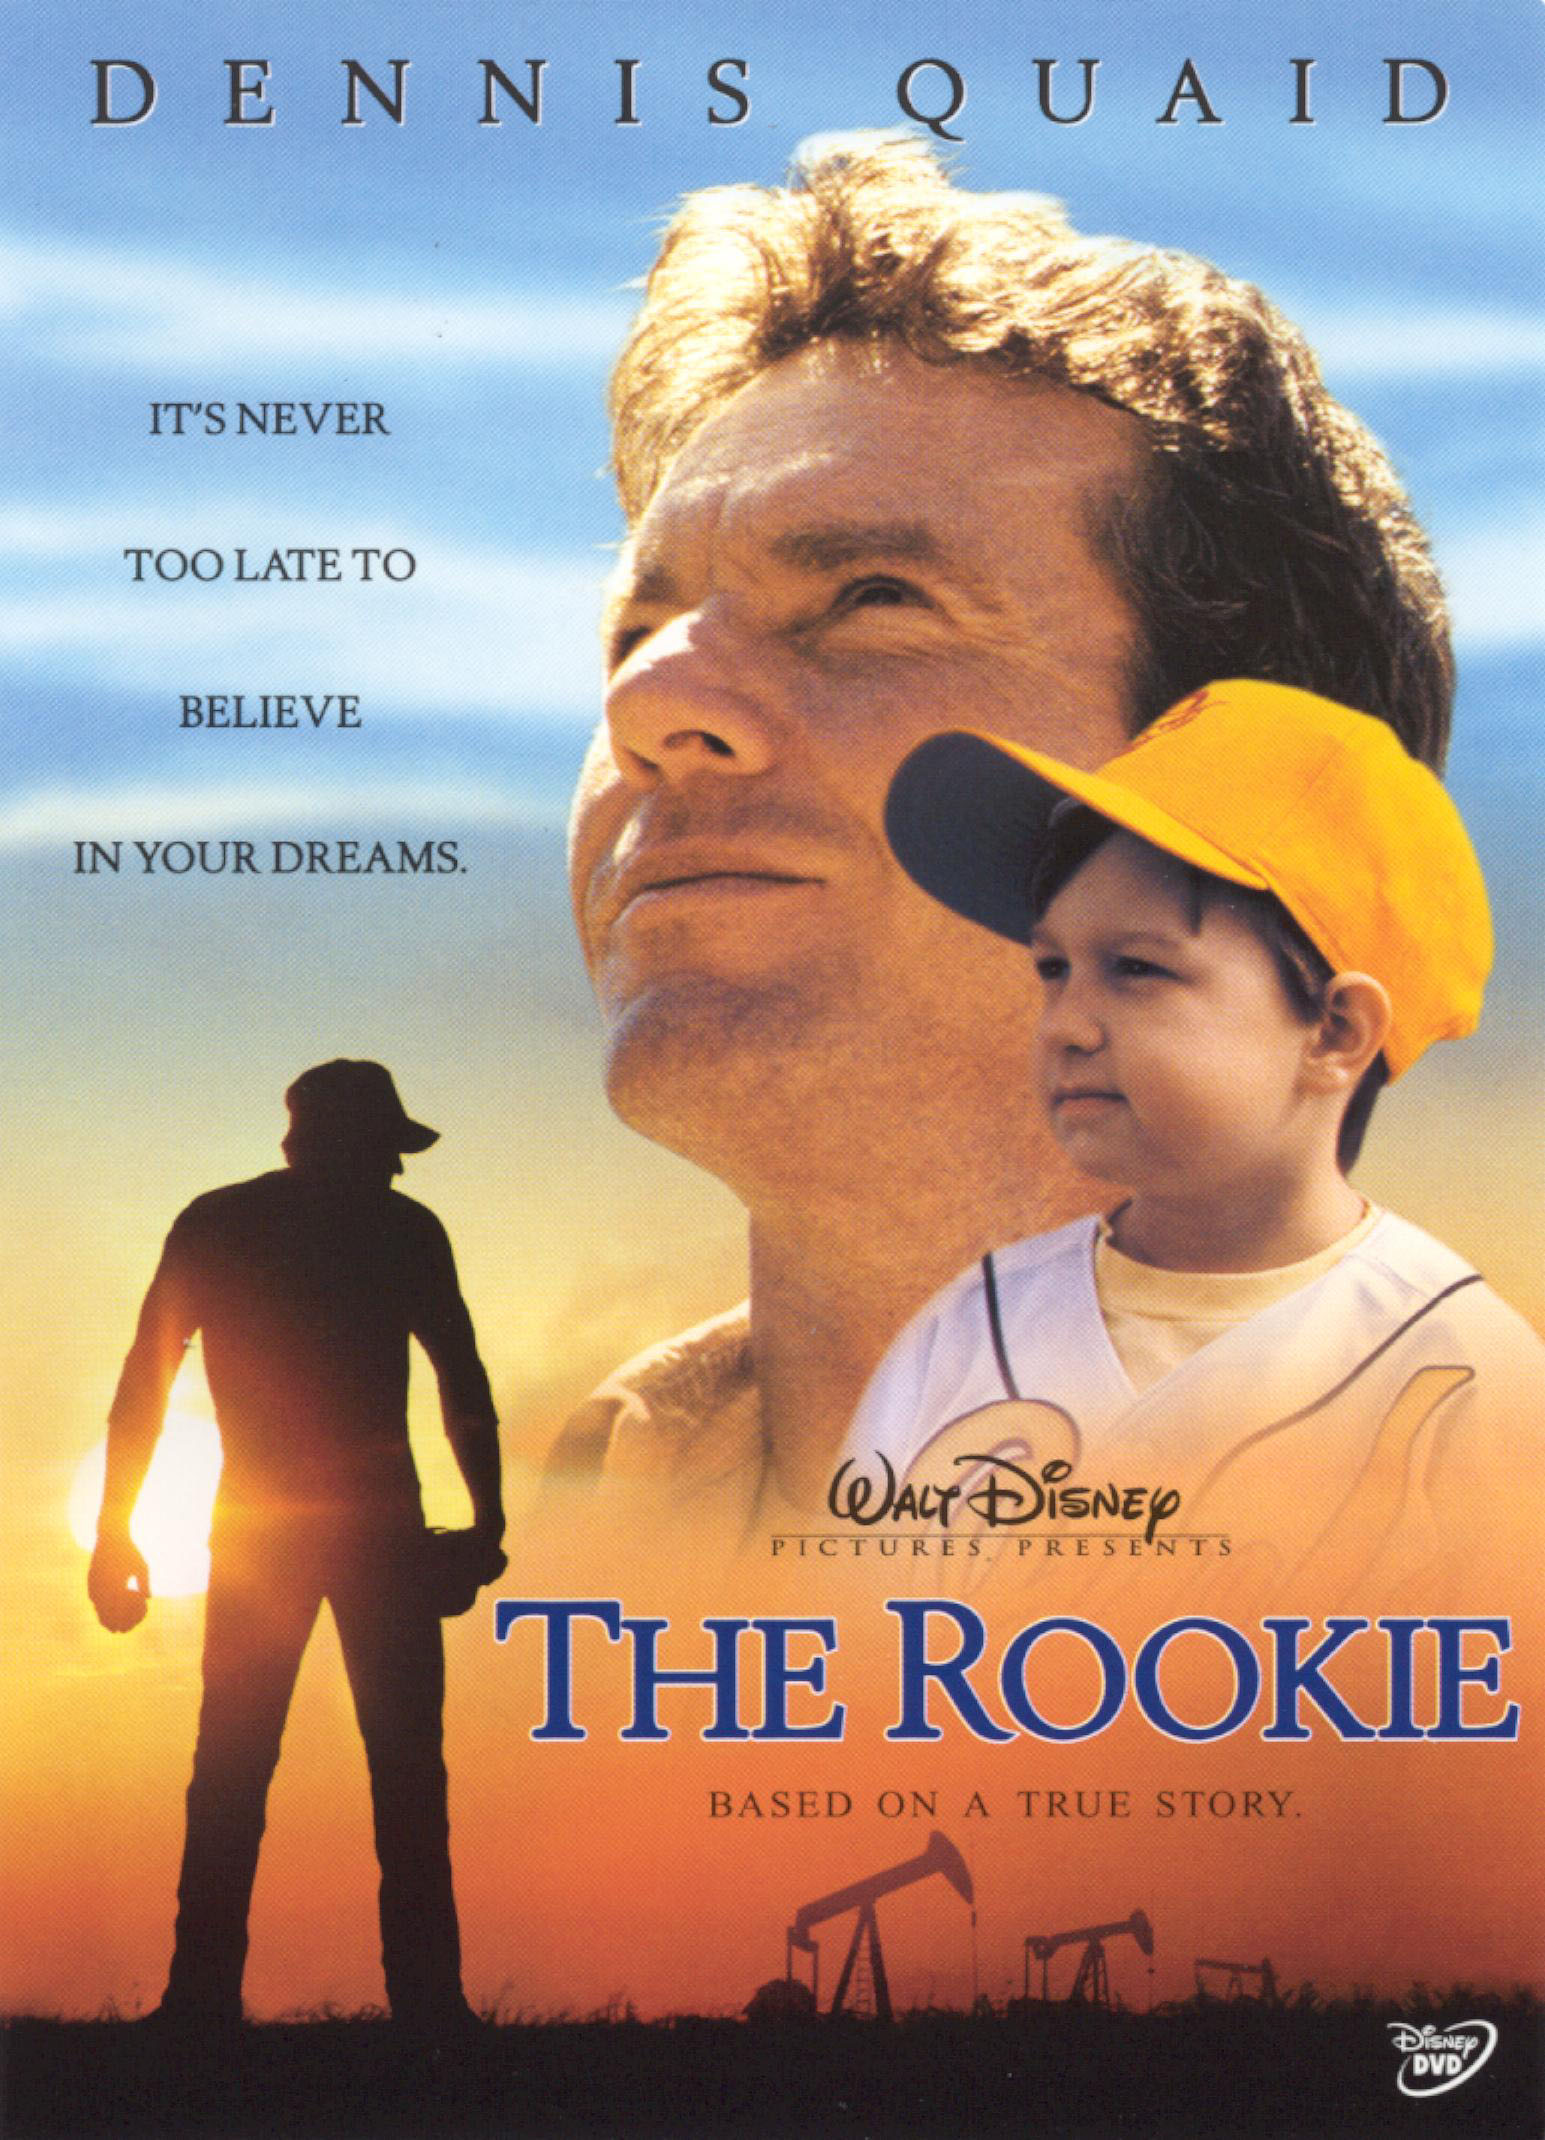 The underdog story to get you in the baseball spirit, The Rookie.